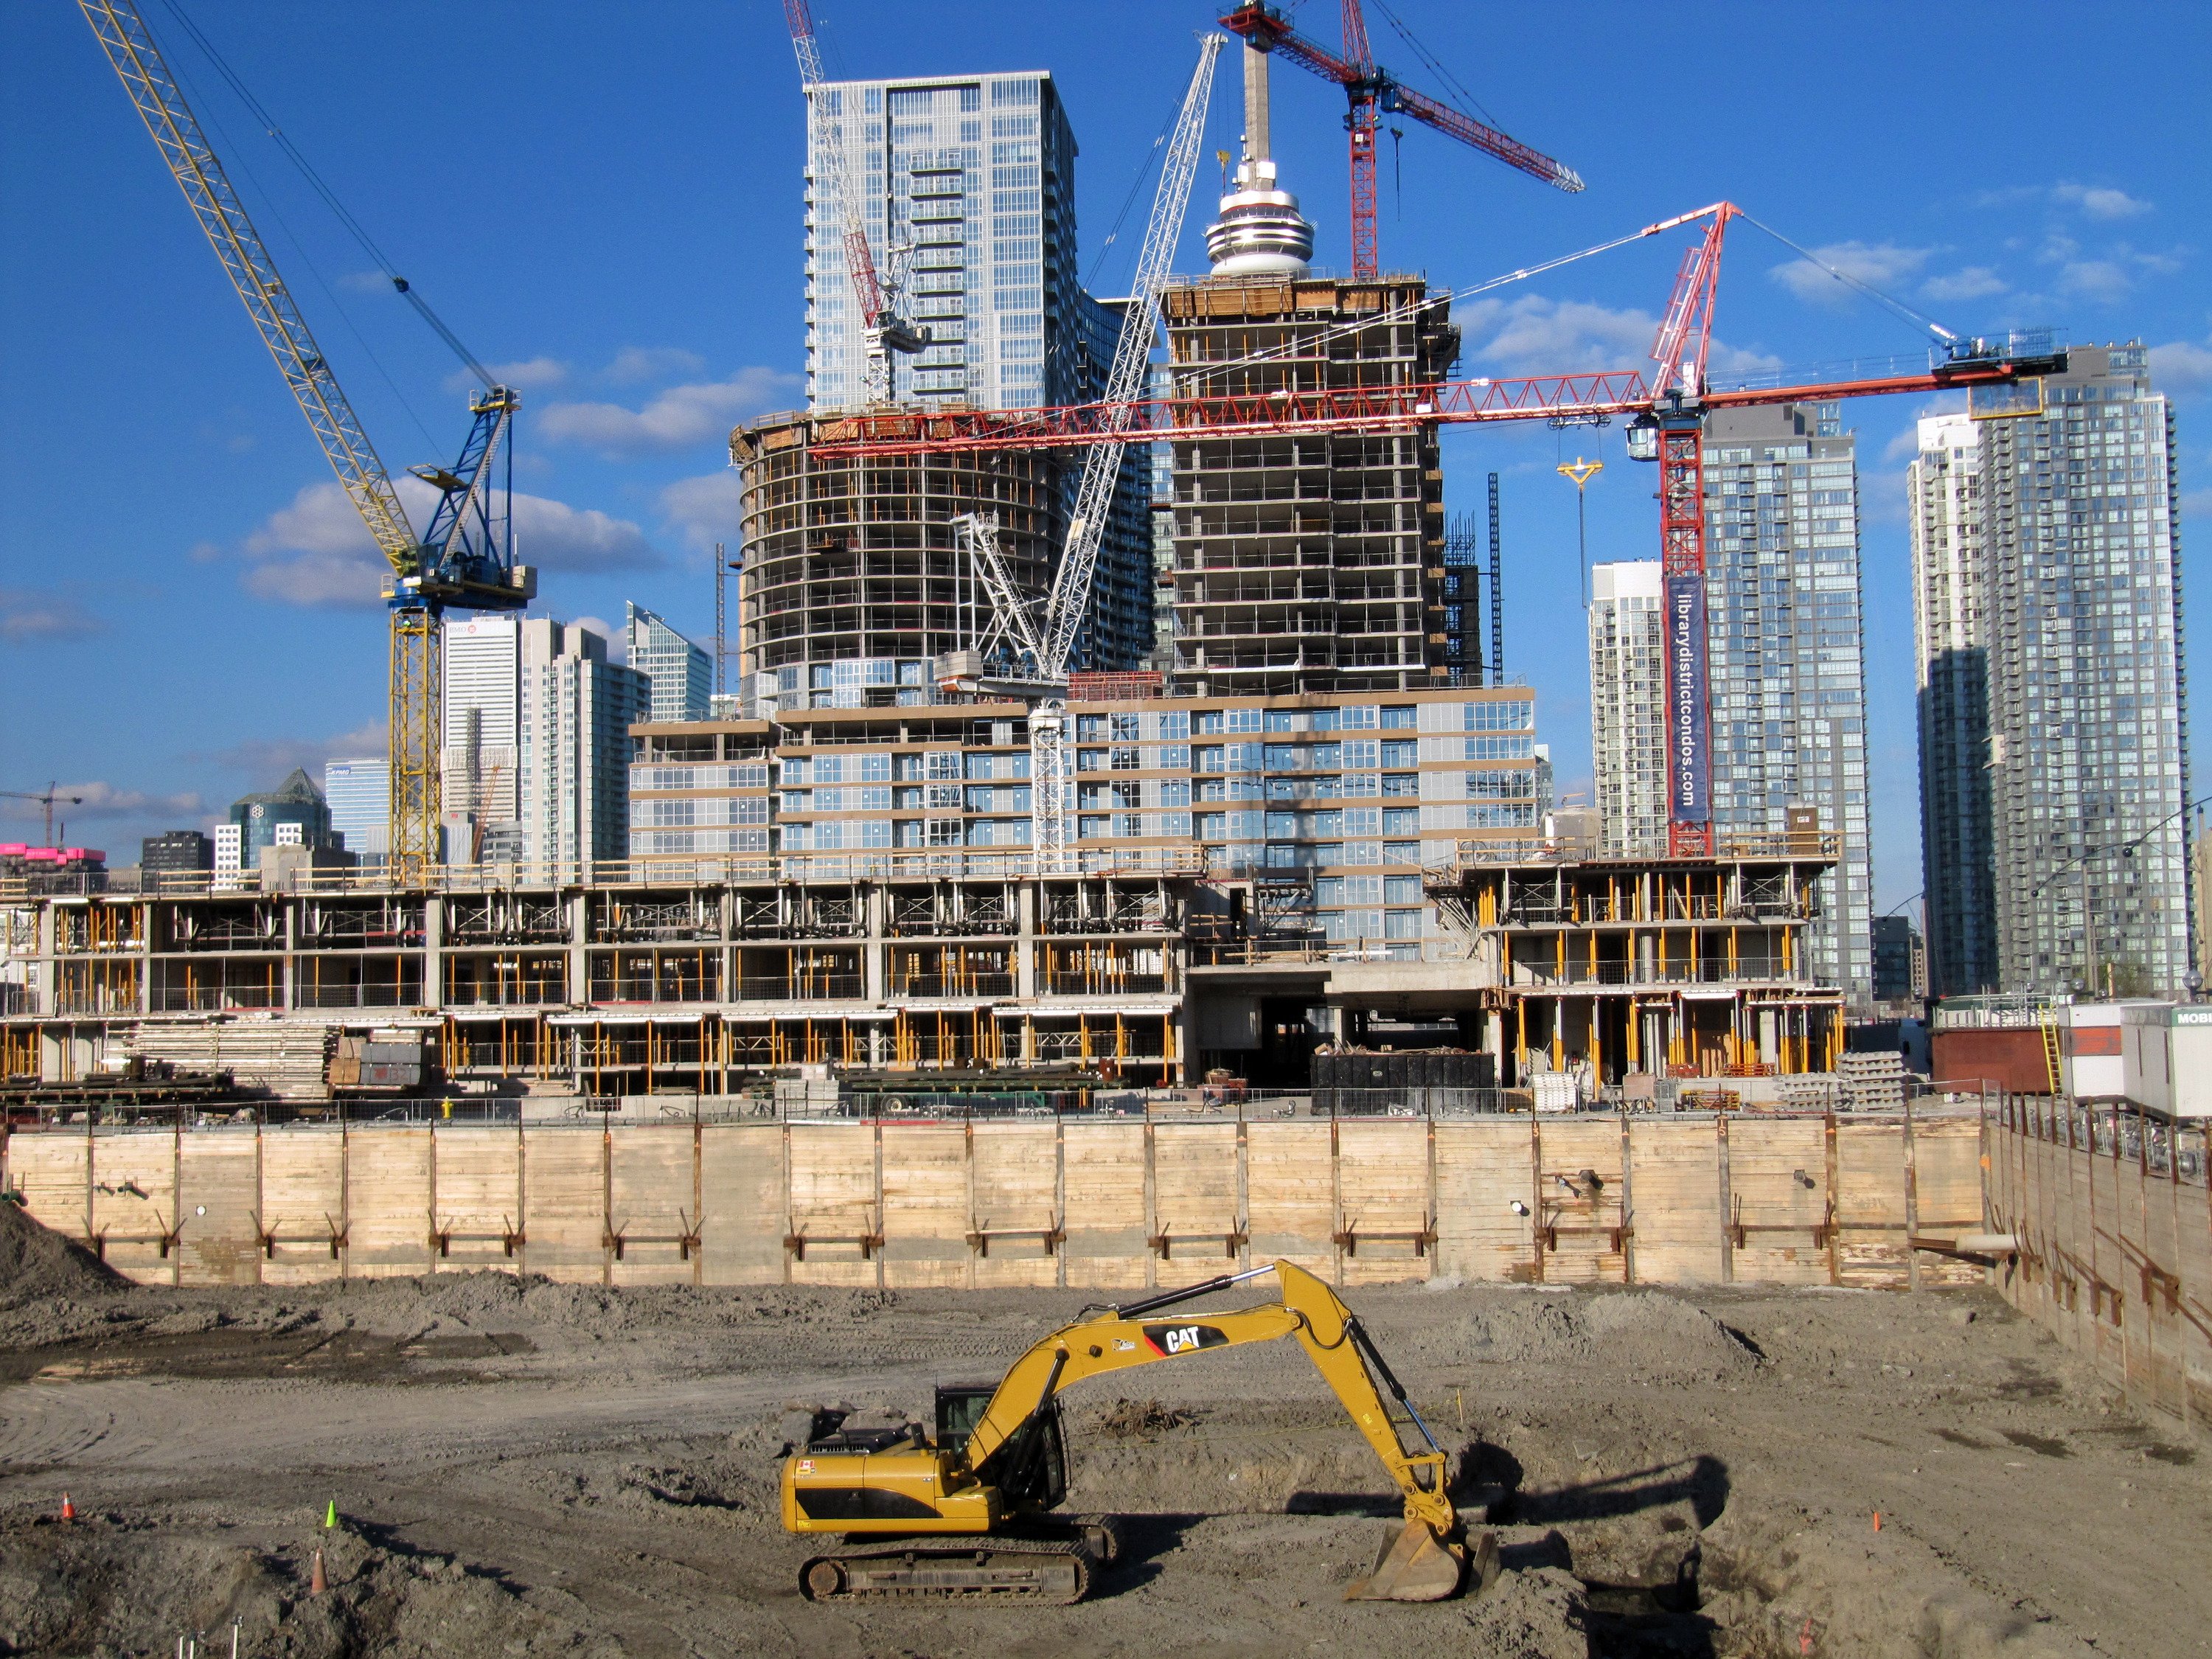 File:Construction in Toronto May 2012.jpg - Wikimedia Commons